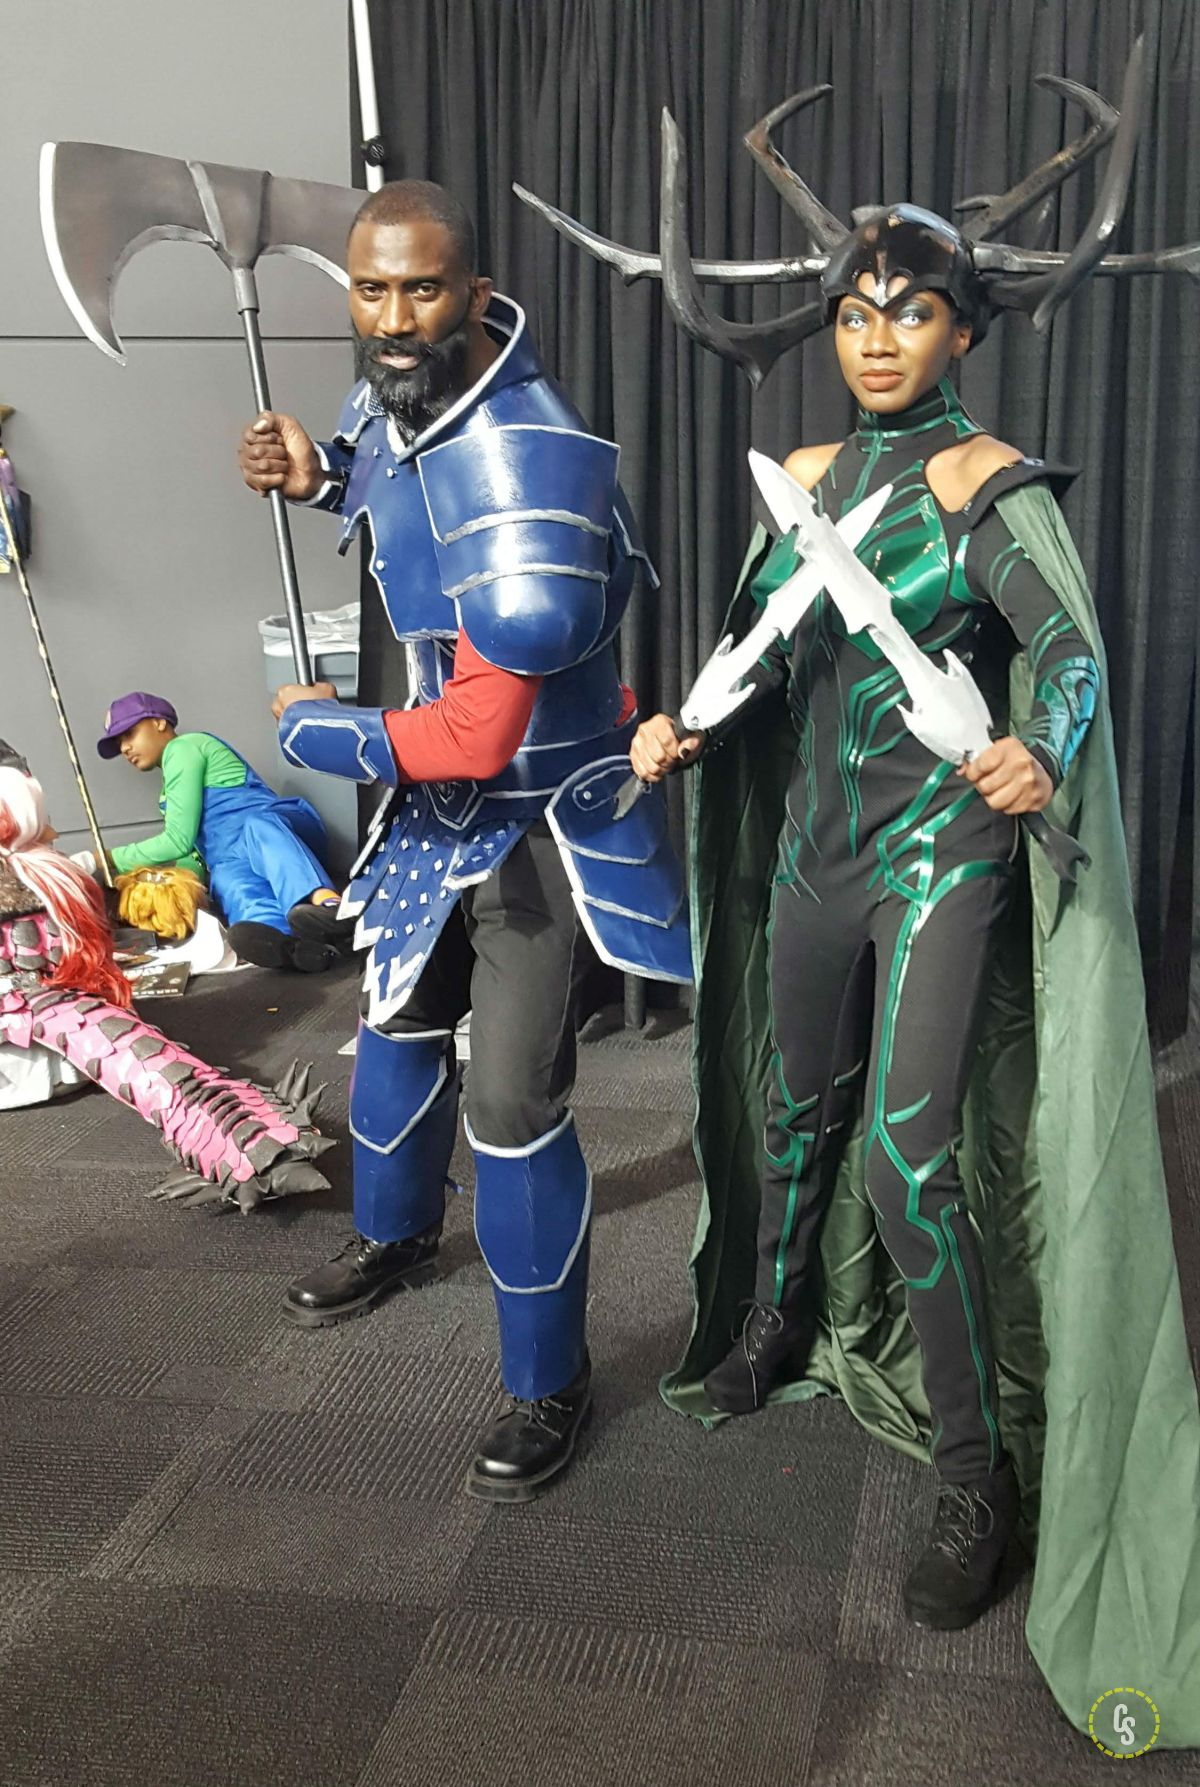 nycc182_099